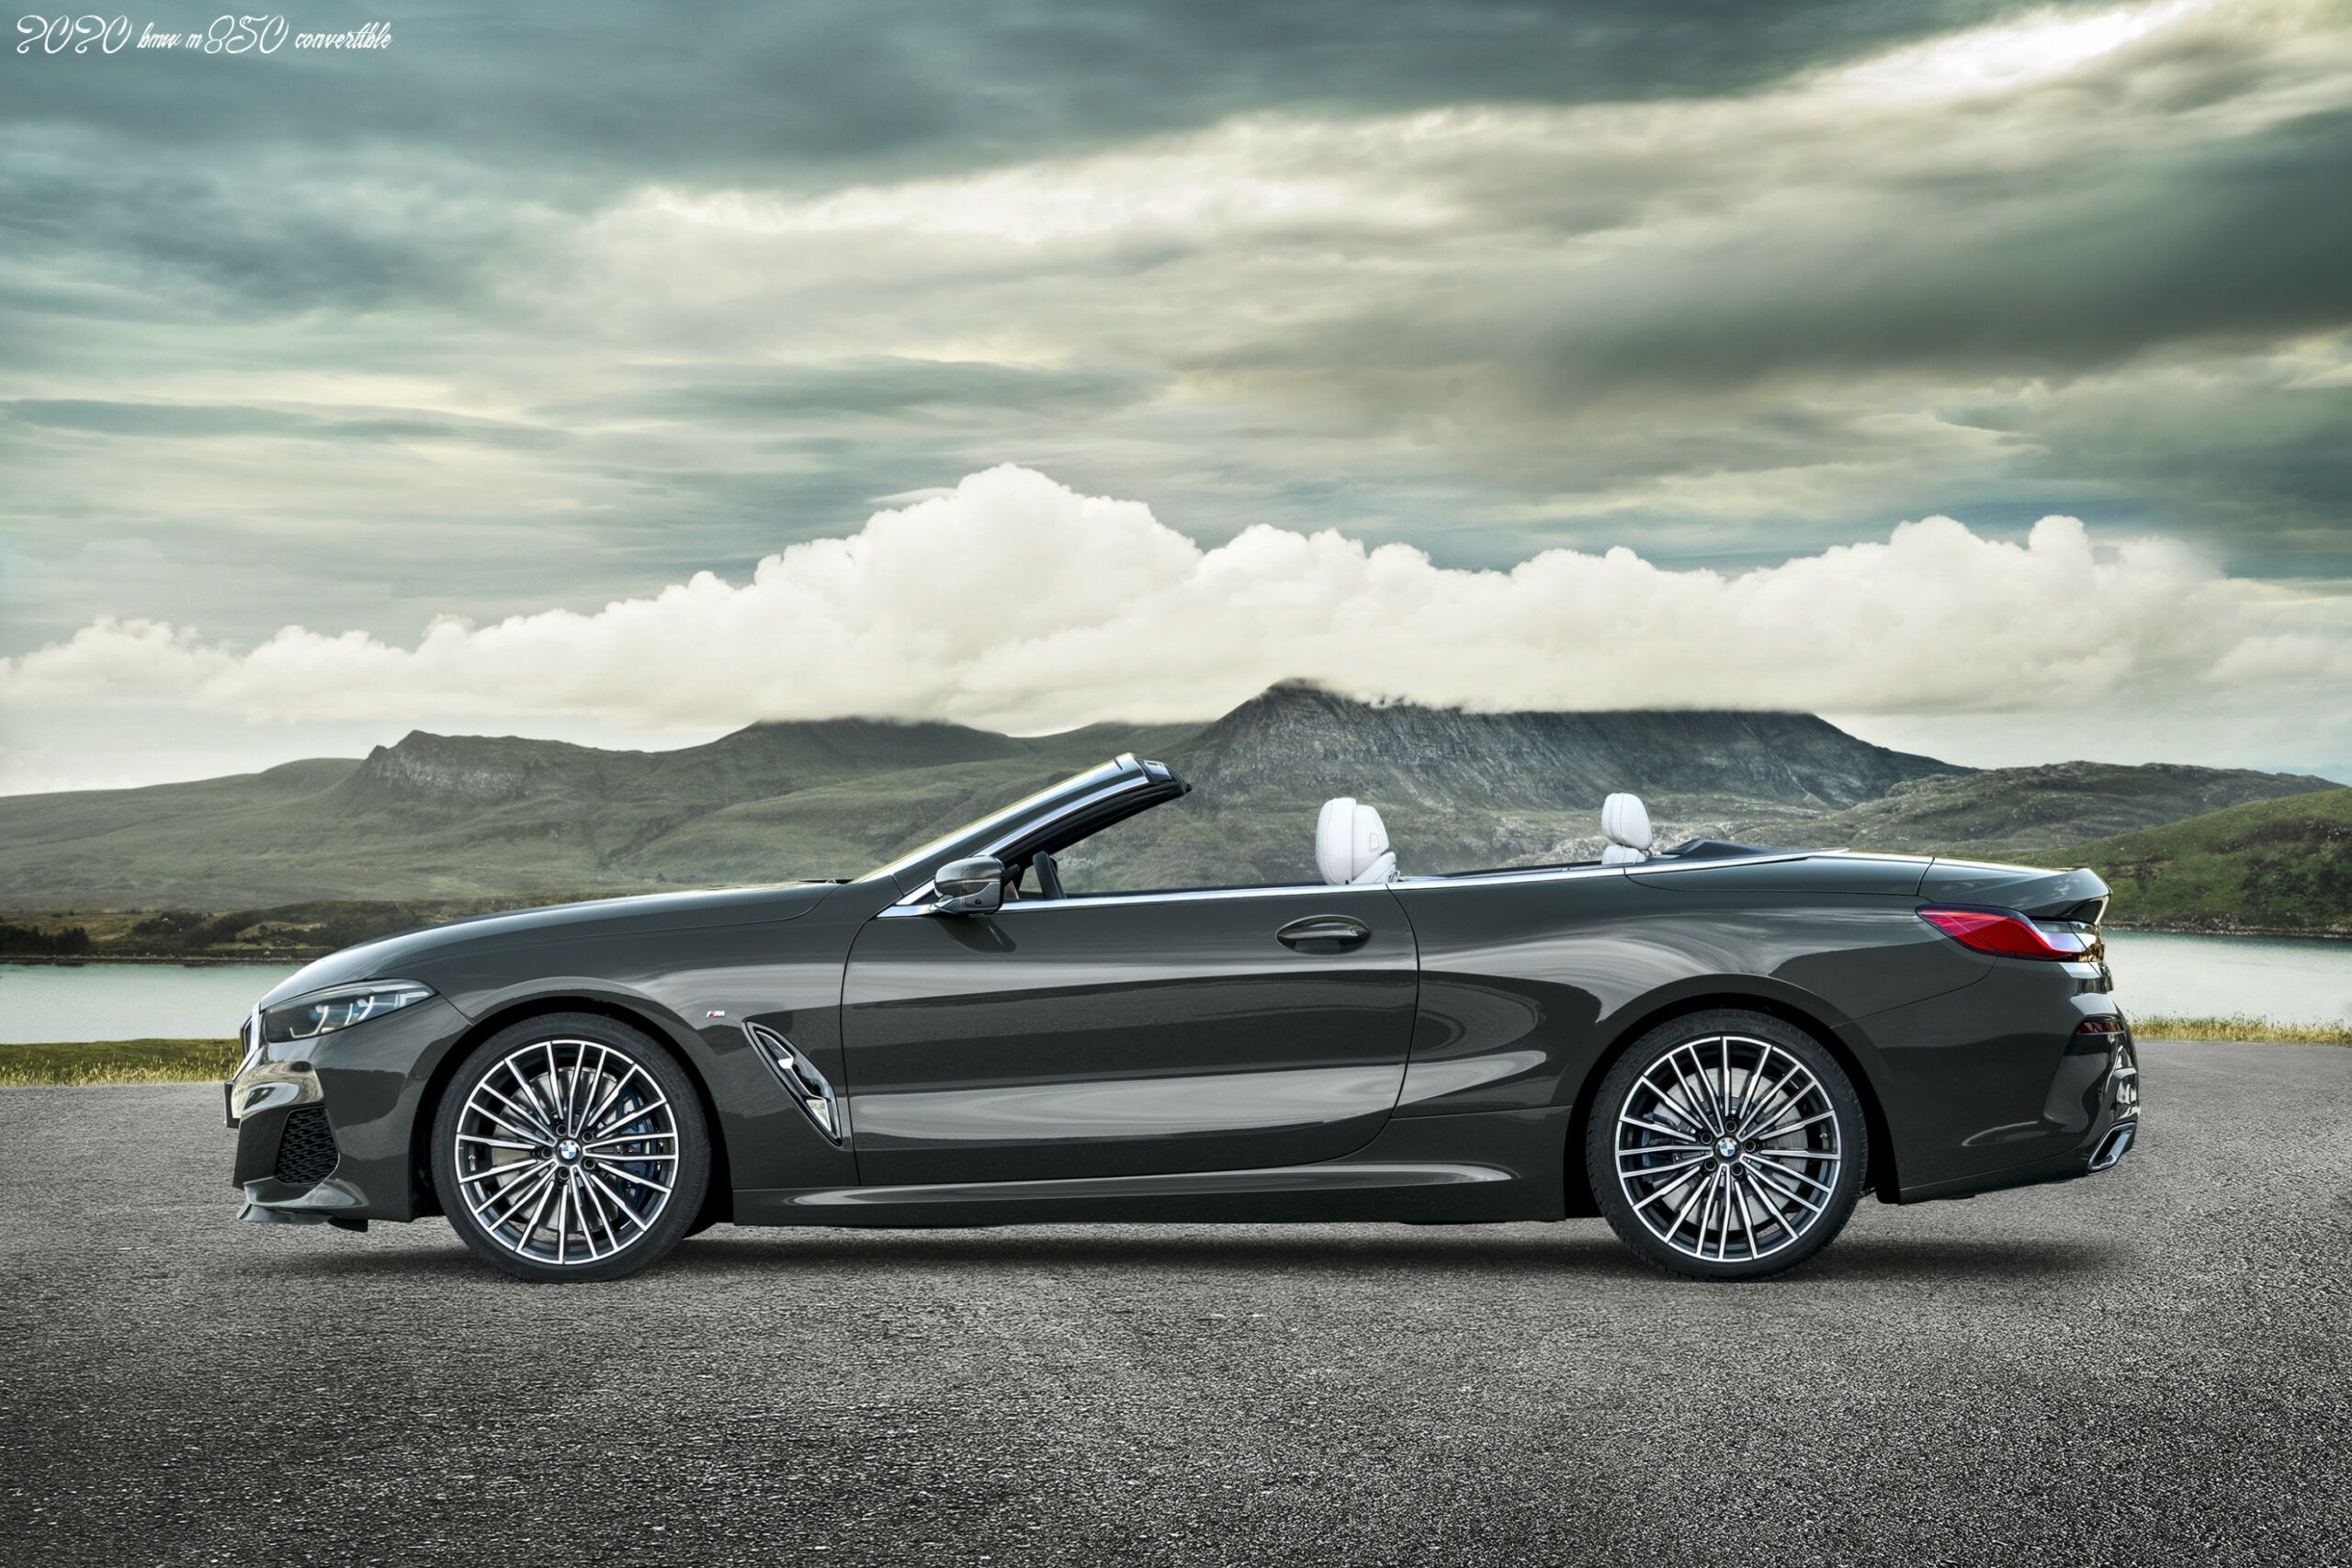 2020 Bmw M850 Convertible In 2020 Bmw Convertible Bmw New Bmw